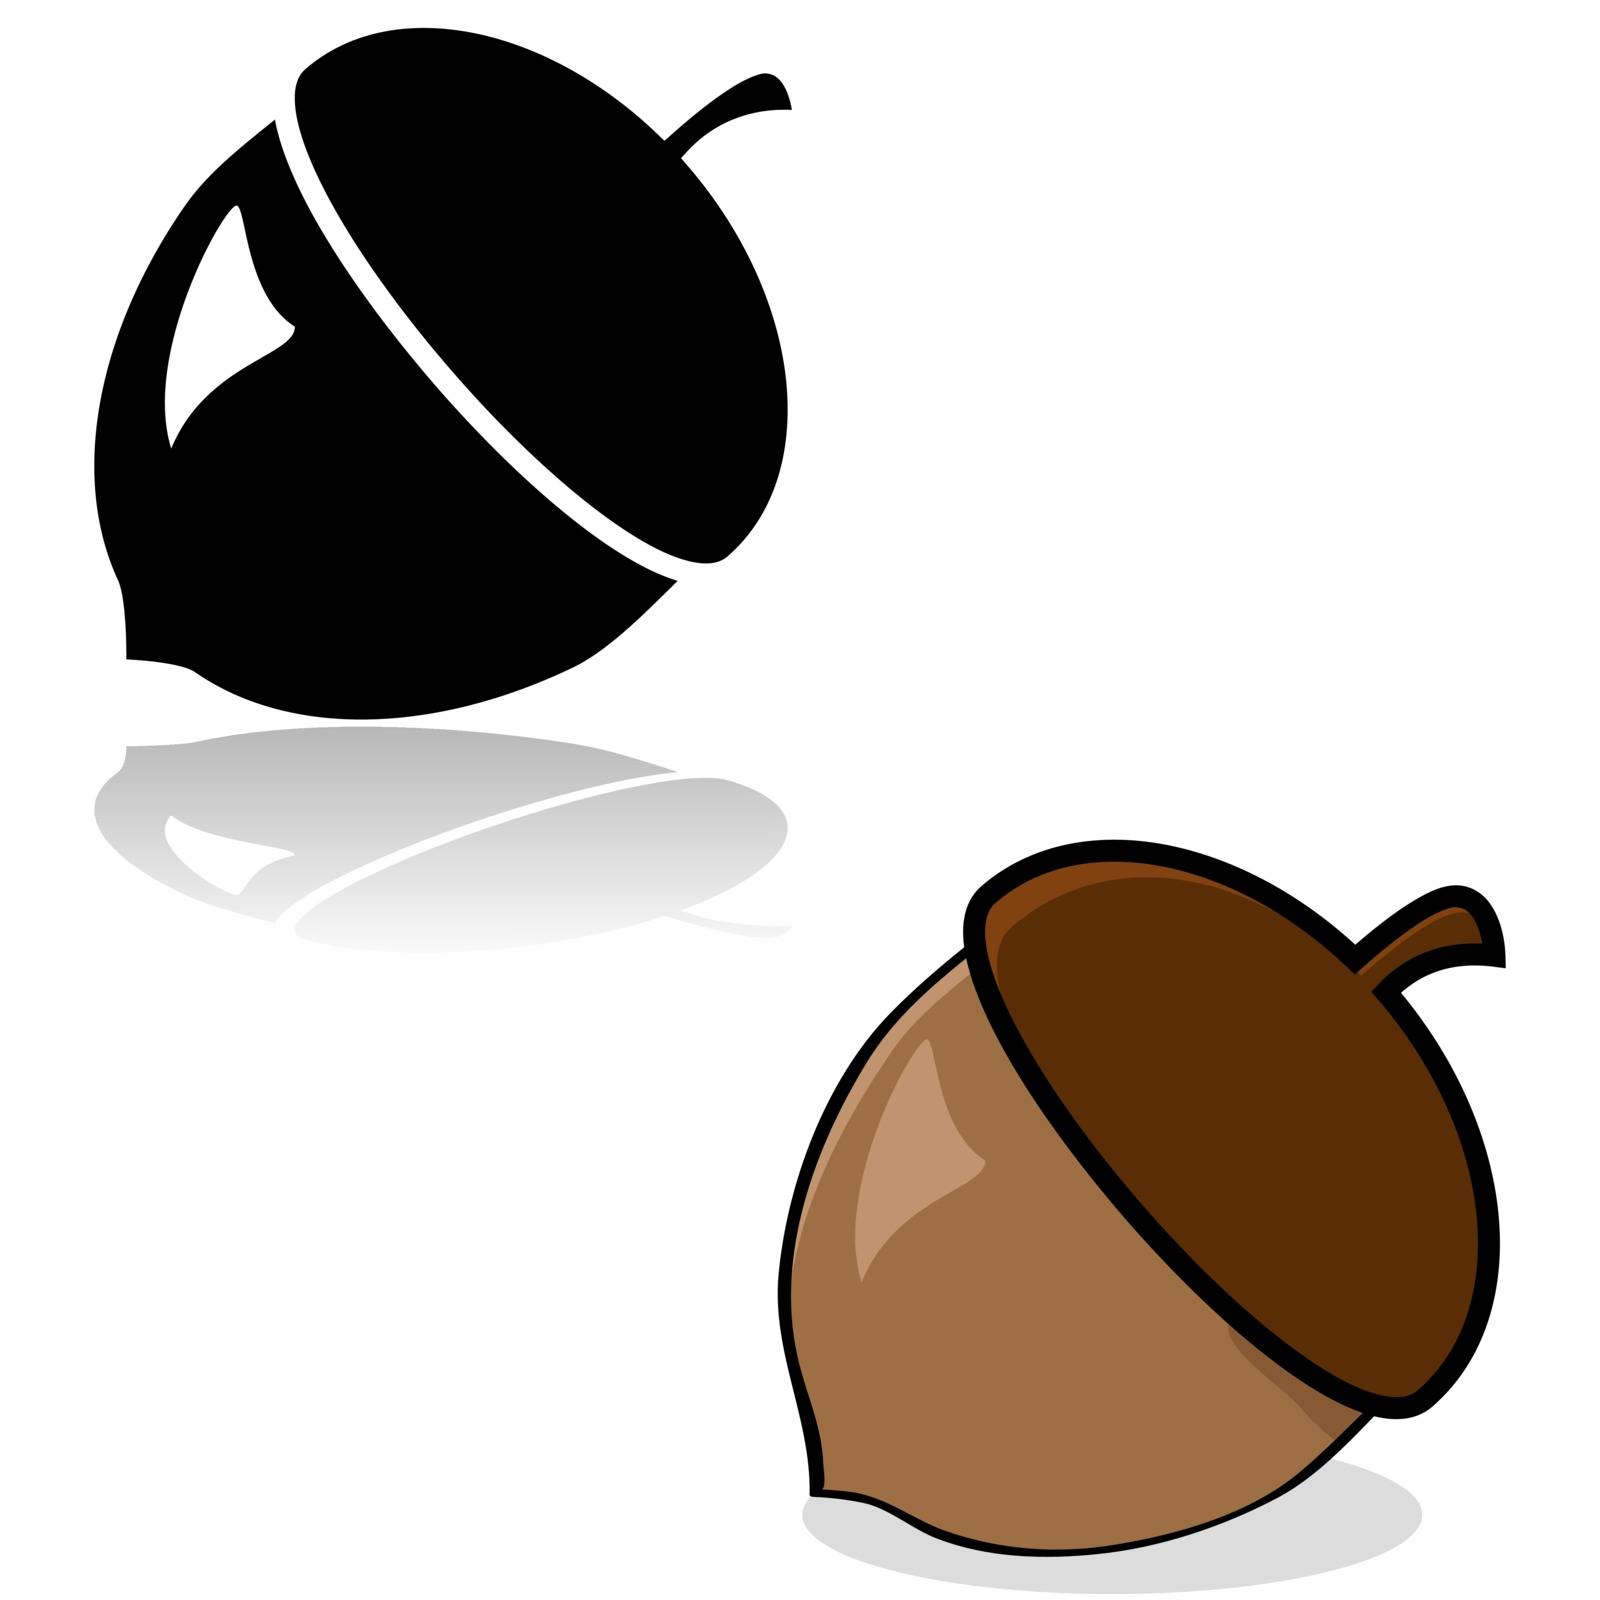 Drawing of an acorn in color and black and white